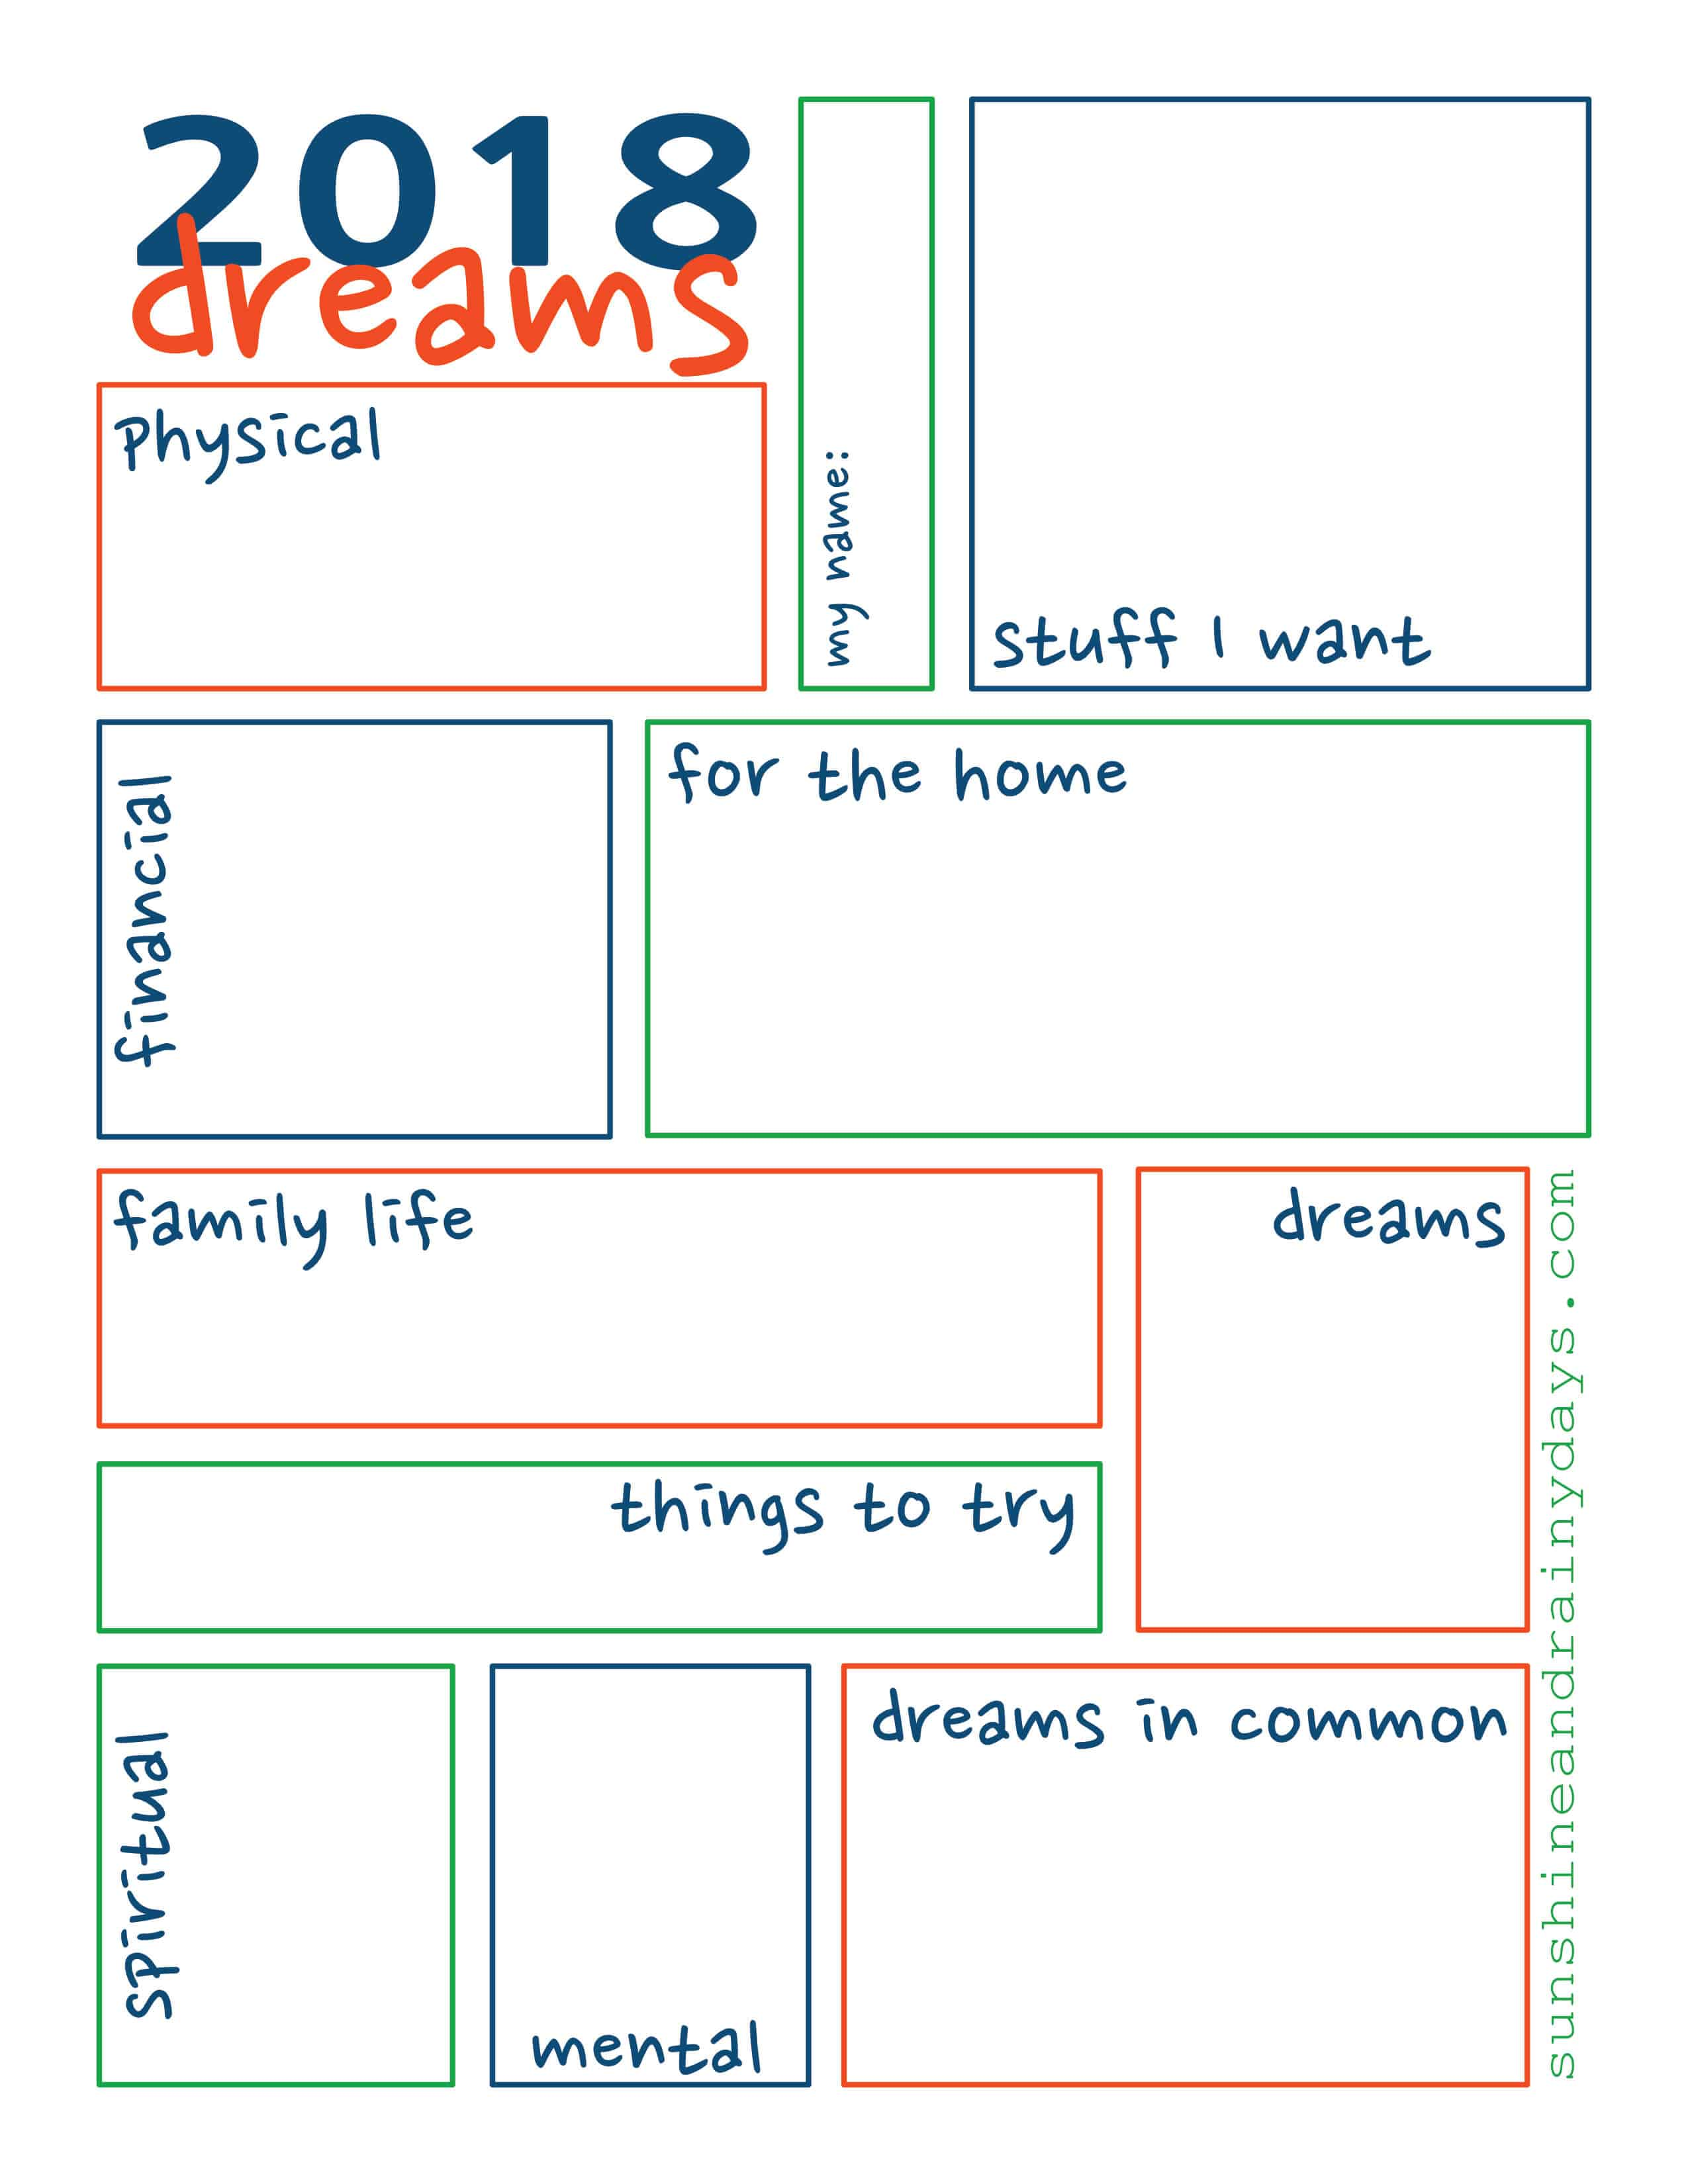 Dream Sheet